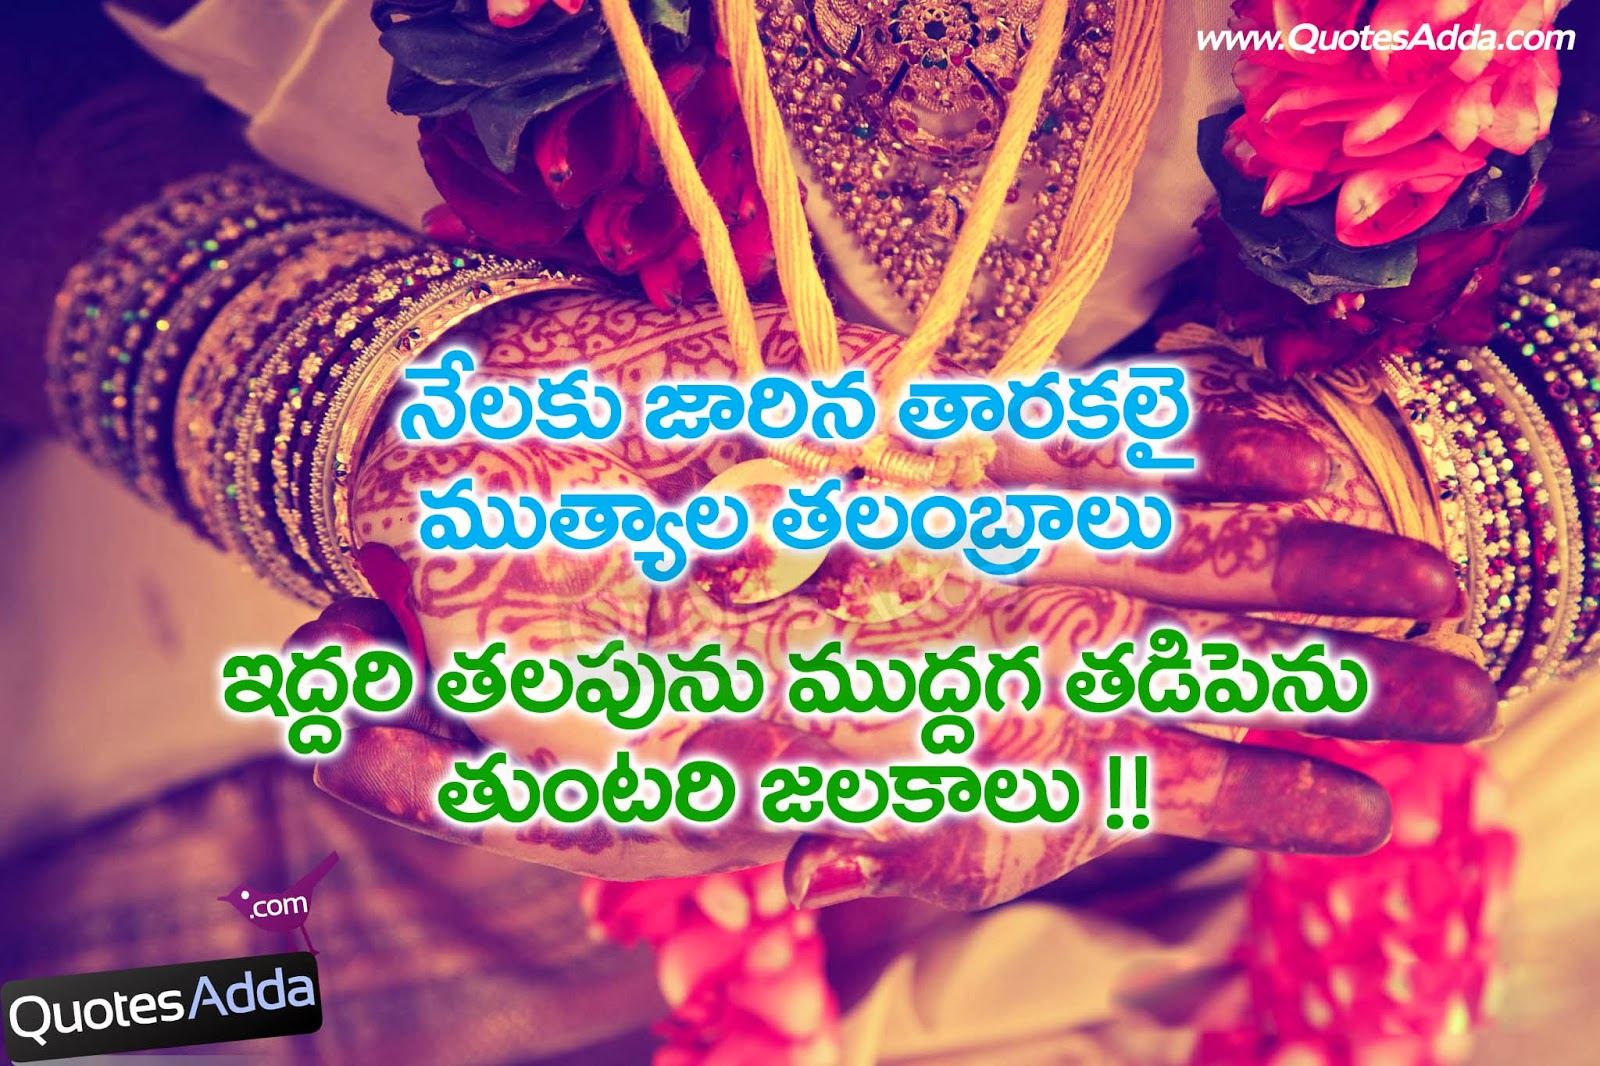 Wedding Wishes beautiful Tamil image with quote